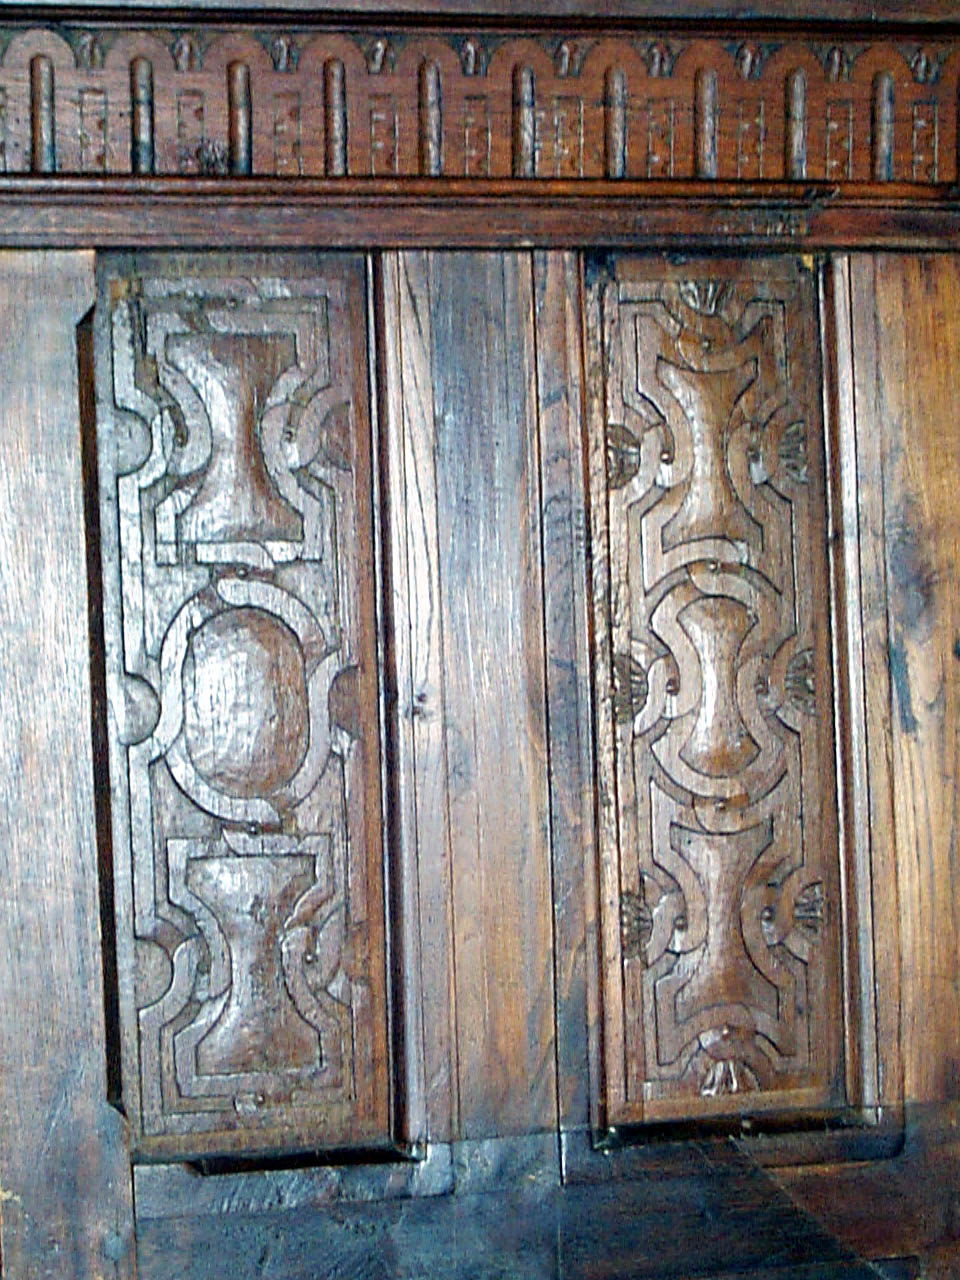 Vintage Wood Paneling: Antique Wood Panels, Wainscot Woodwork, Library Furniture